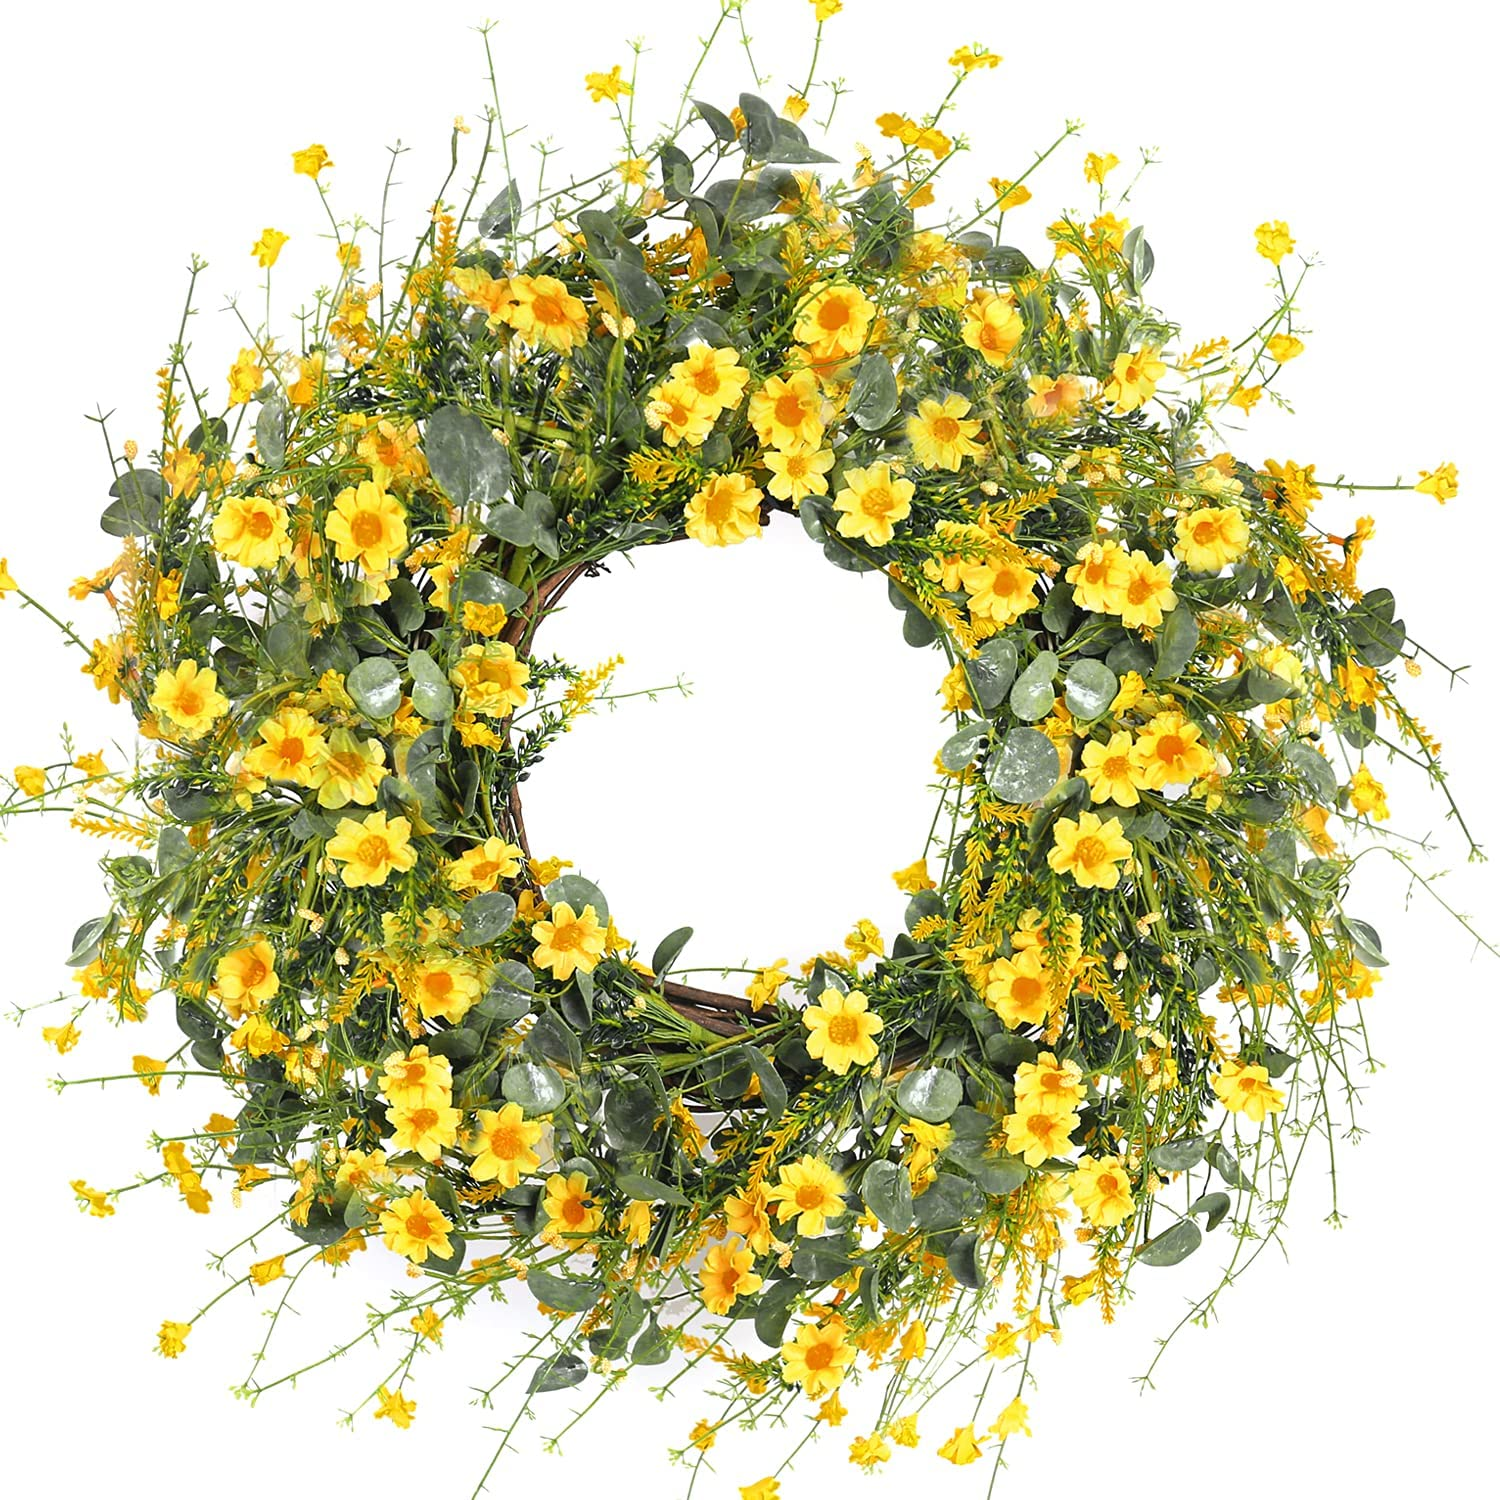 Sggvecsy Yellow Daisy Wreath 24 Inch Spring Summer Wreath Fake Silk Floral Wreath with Green Eucalyptus Leaves and Lavender for Front Door Window Wall Wedding Farmhouse Festival Decor